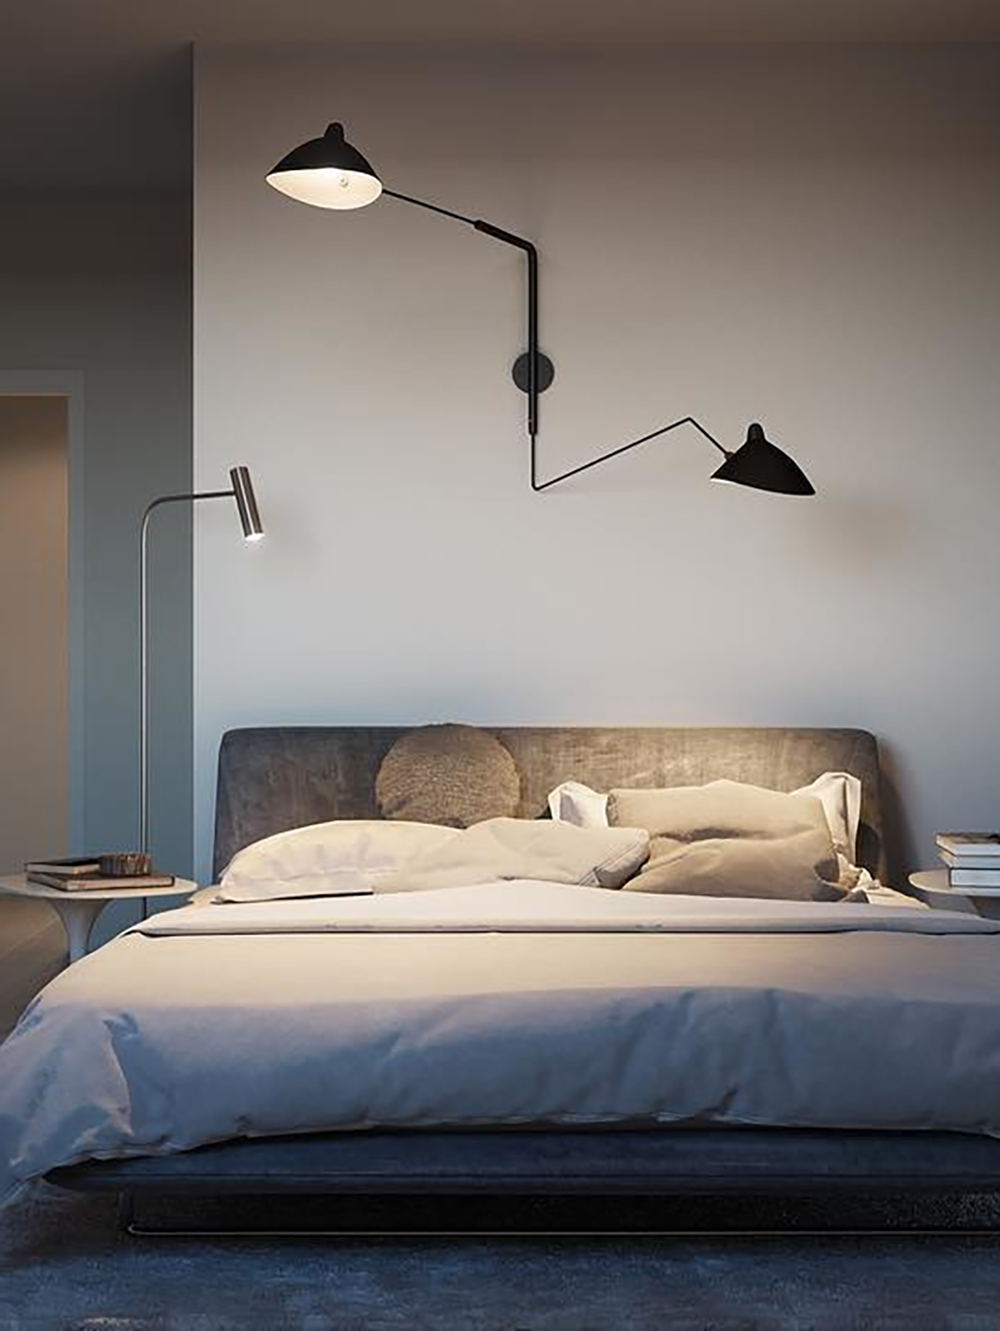 Serge Mouille Wall Lamp In 2020 Serge Mouille Wall Sconce Mouille Wall Lamp Wall Lamps Bedroom